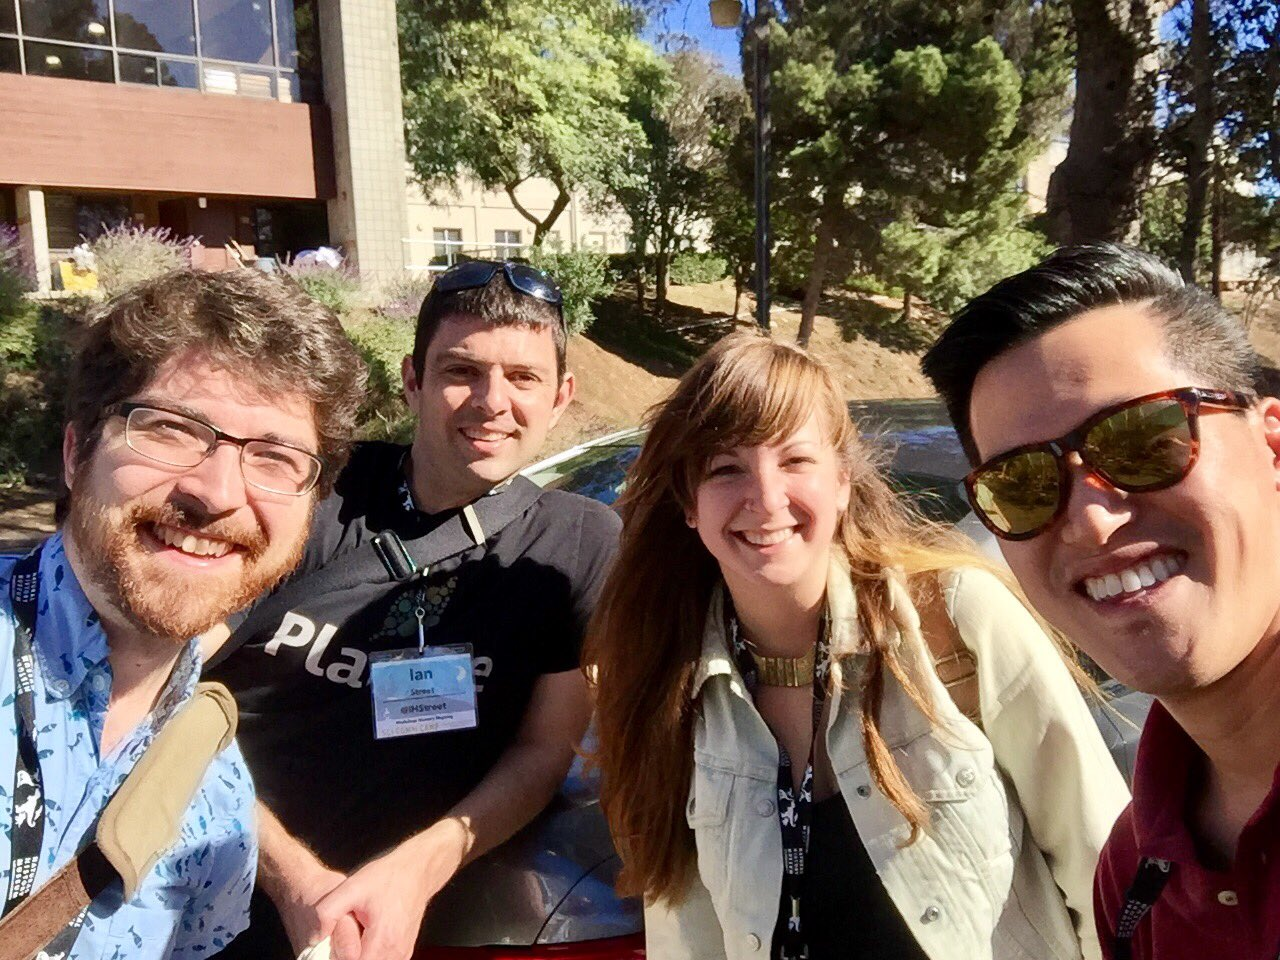 Ready for #SciCommCamp with @kellievinal @IHStreet @TestTubeGames https://t.co/D7w5SwjAud